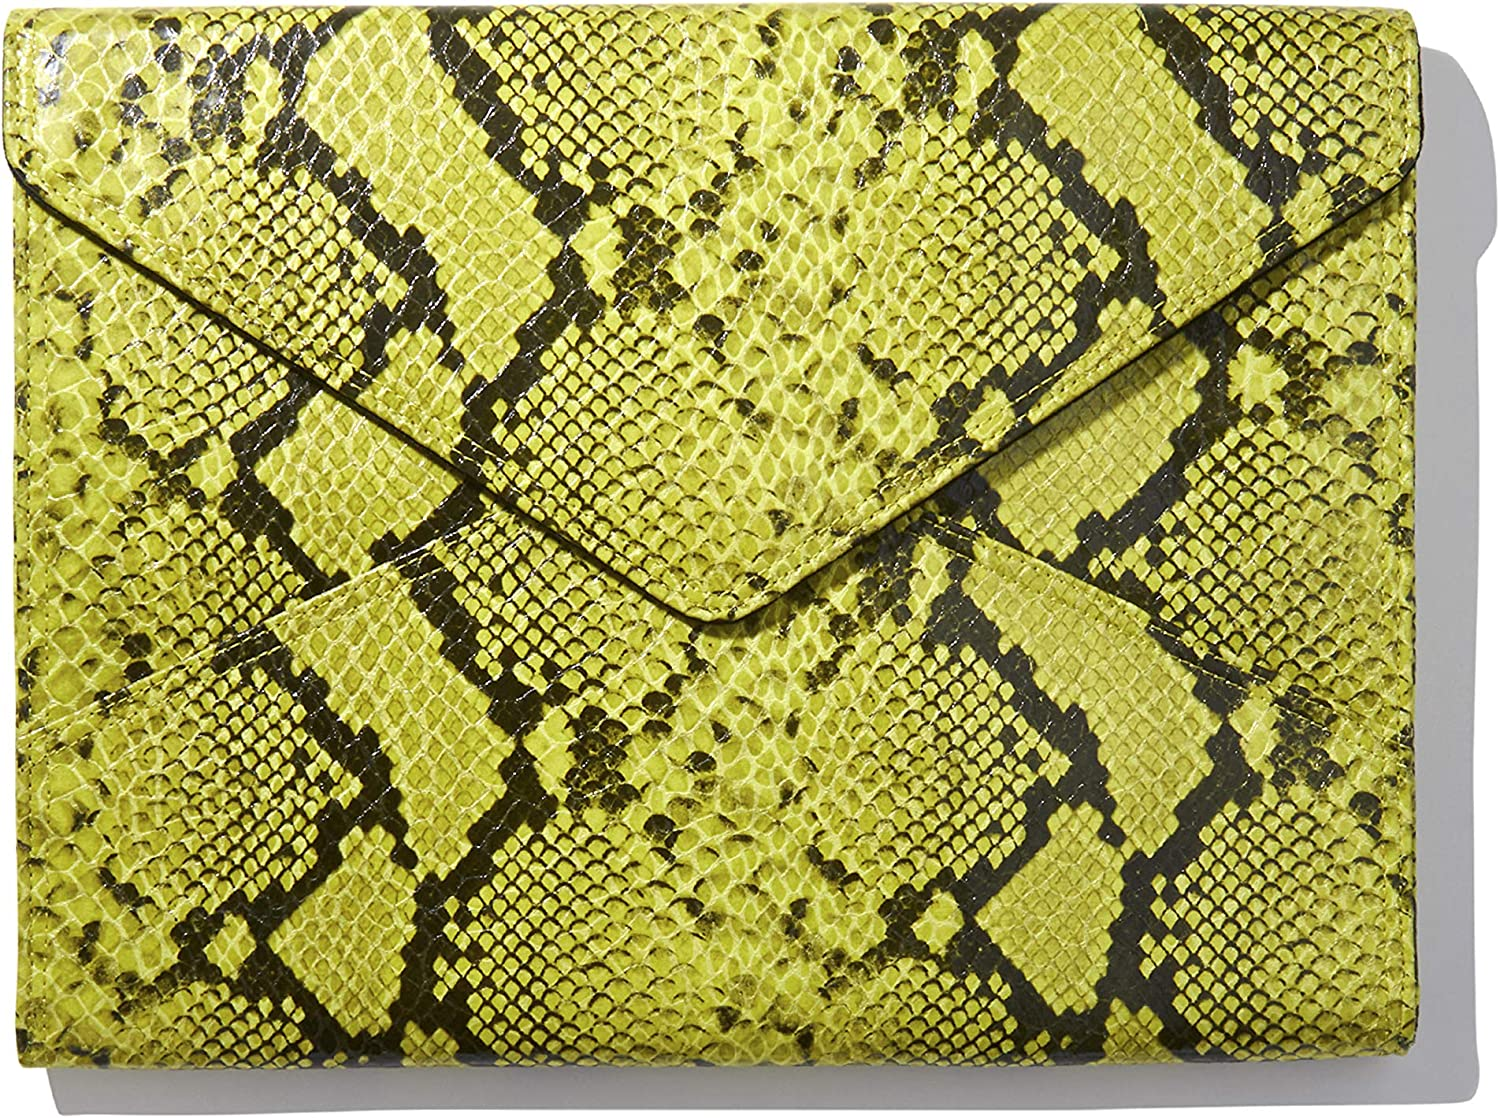 Sonix Faux Snakeskin Leather Laptop Case Padded Envelope Sleeve for MacBook, Notebooks, Laptops (15 inch, Green Python Leather)